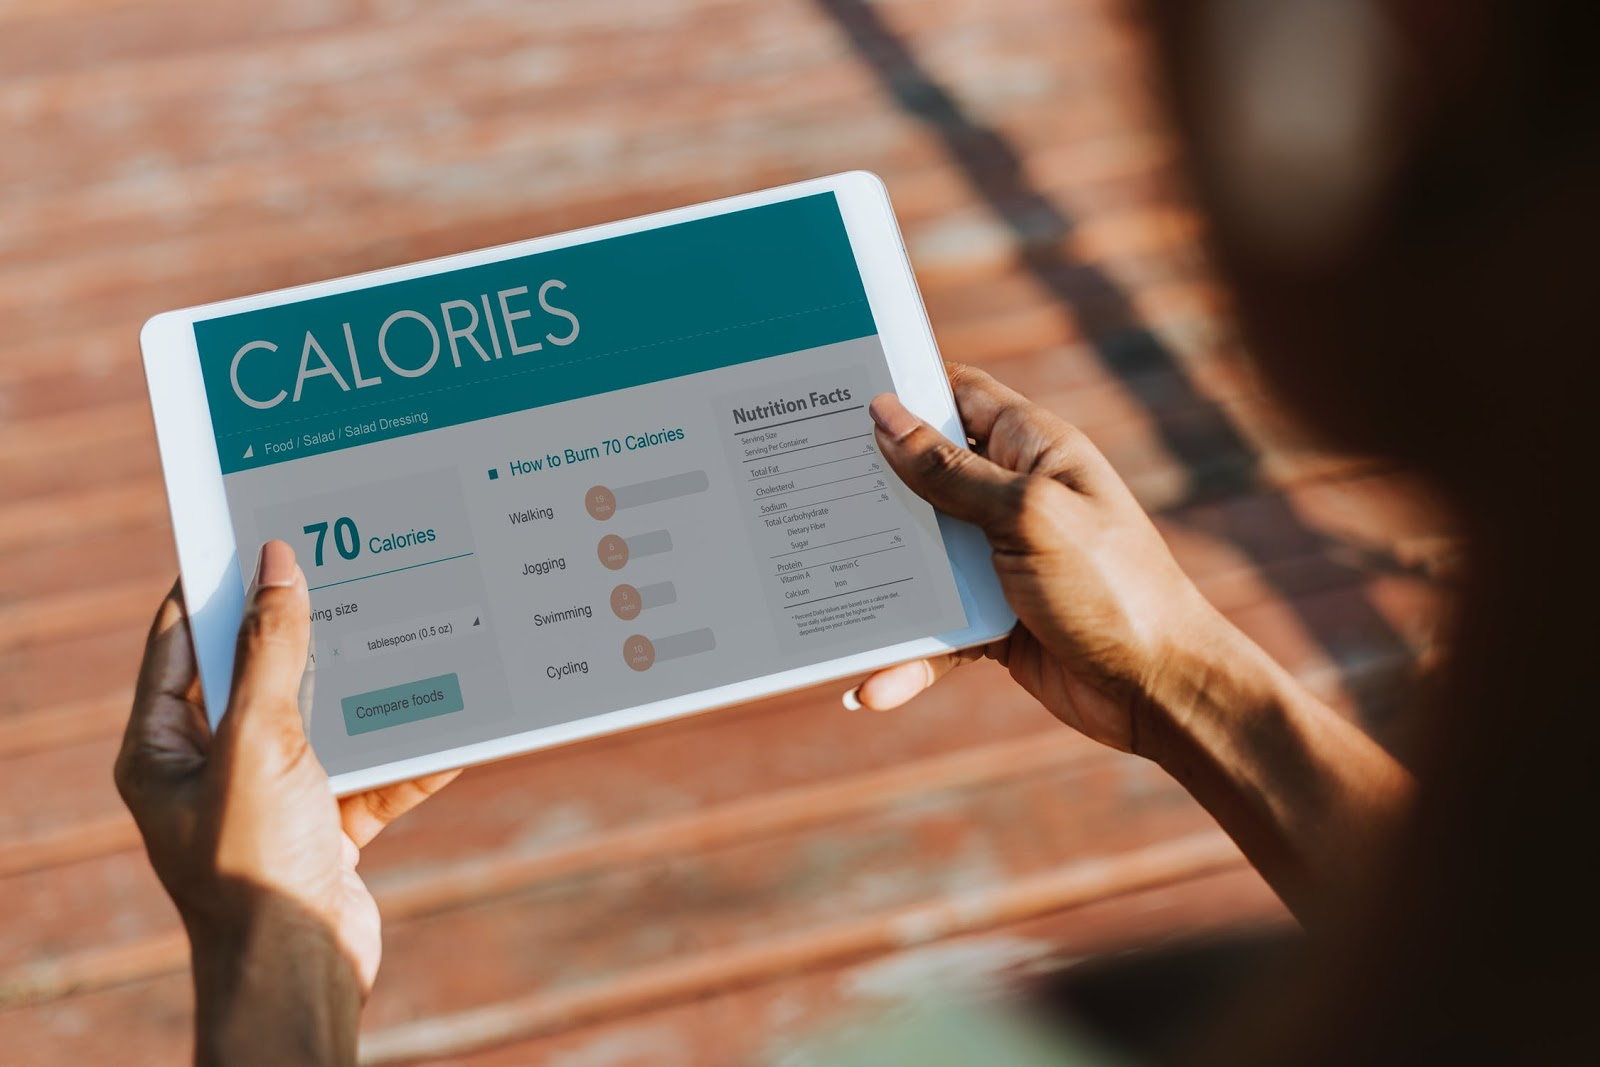 500-calorie meals: Hands hold a tablet that's open to a calorie tracker